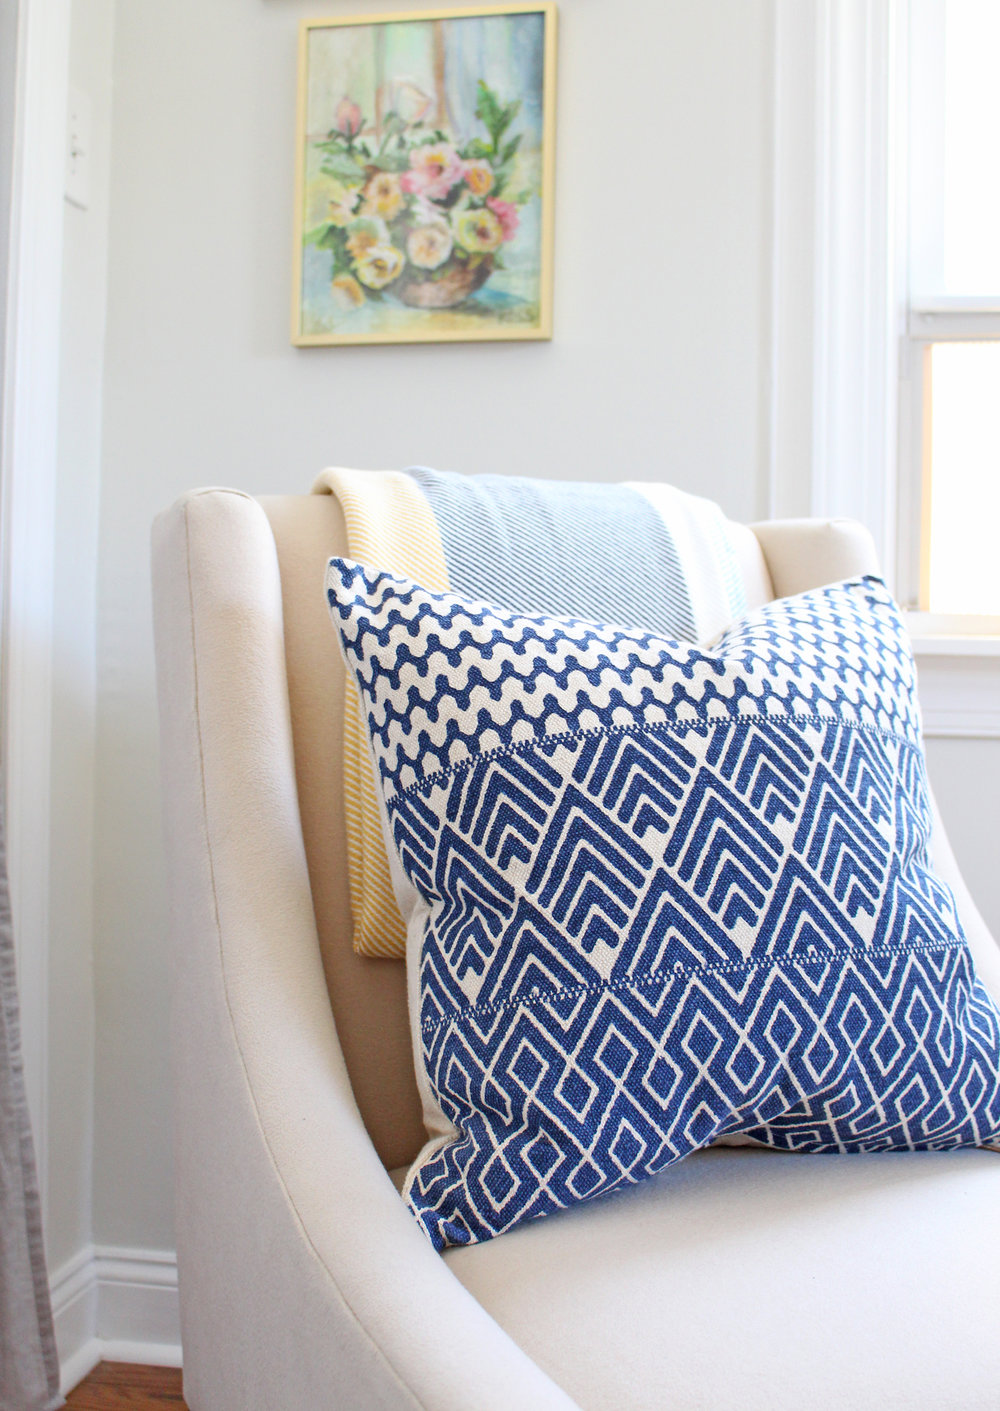 A modern and bright home office gets a bohemian touch in the form of a blue throw pillow.